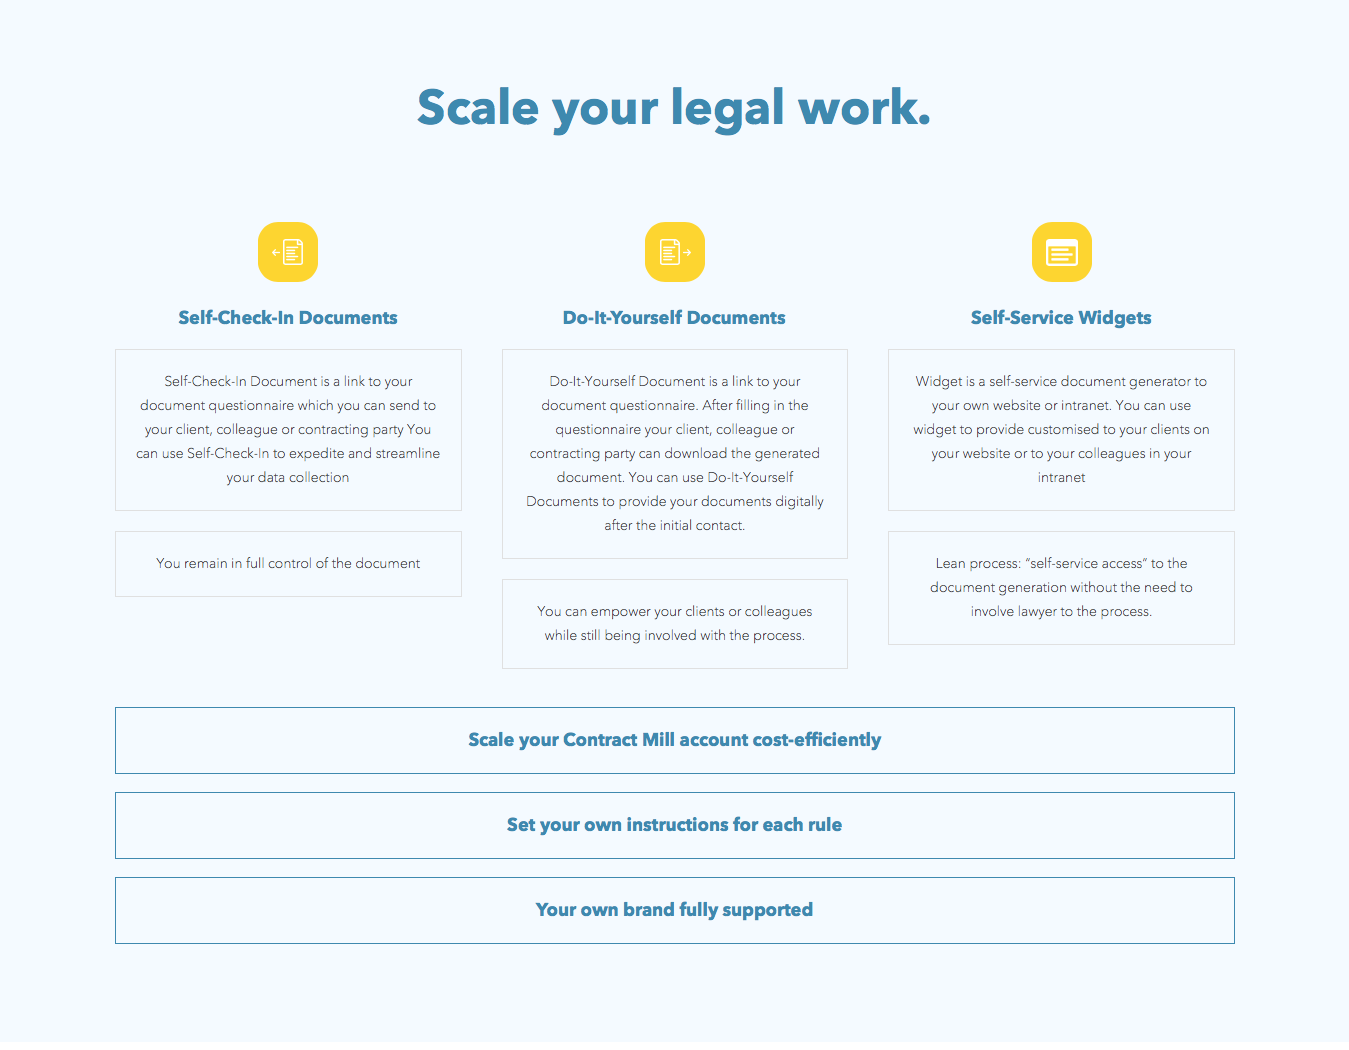 Contract automation with contract mill to easily generate legal document automation with contract mill solutioingenieria Choice Image